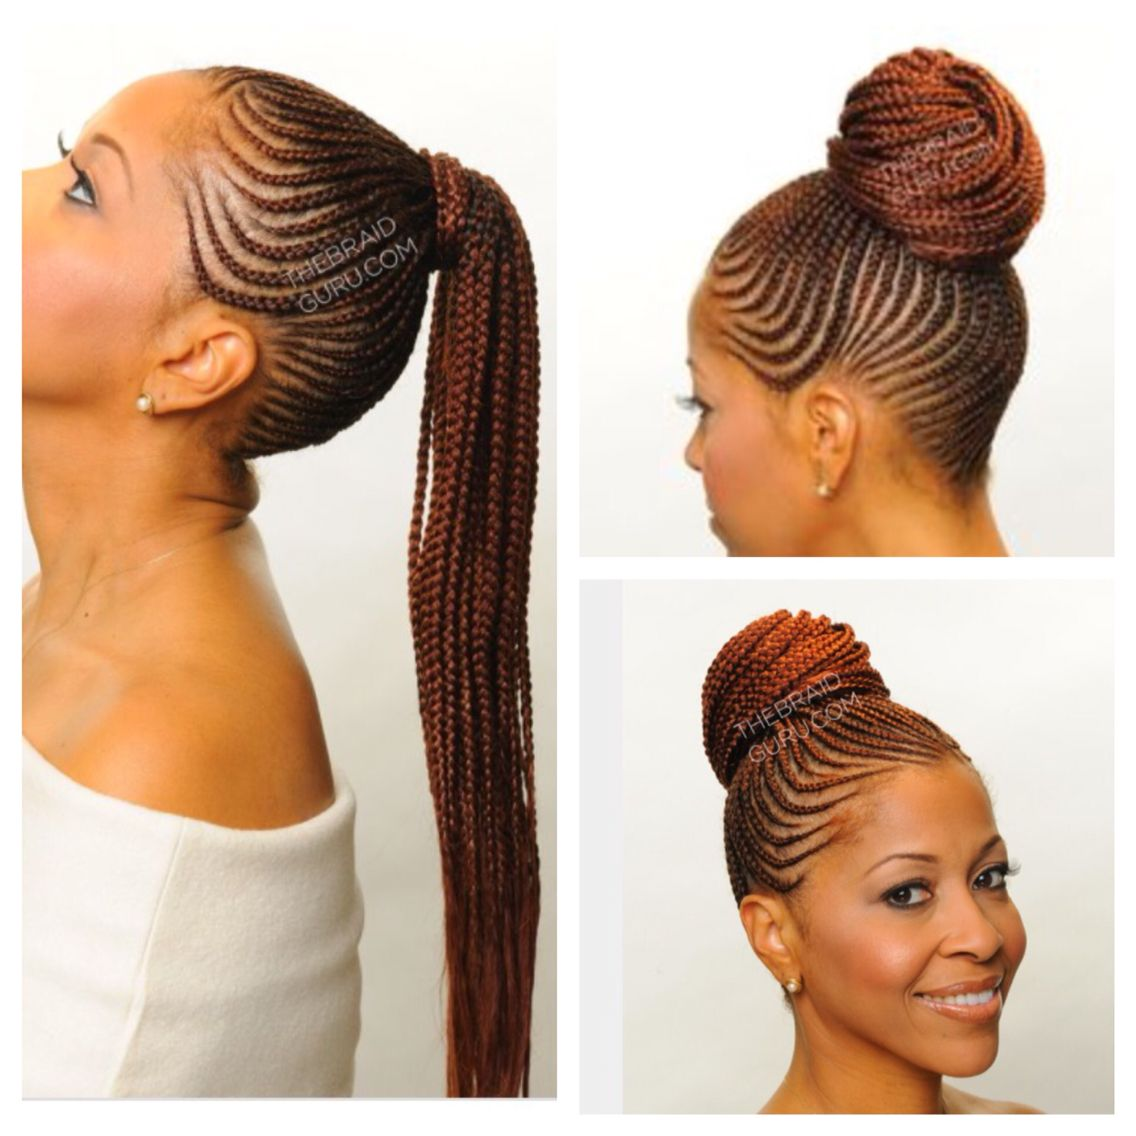 Braided Updo Bun African Braids Hairstyles Braided Ponytail Hairstyles Cornrow Updo Hairstyles